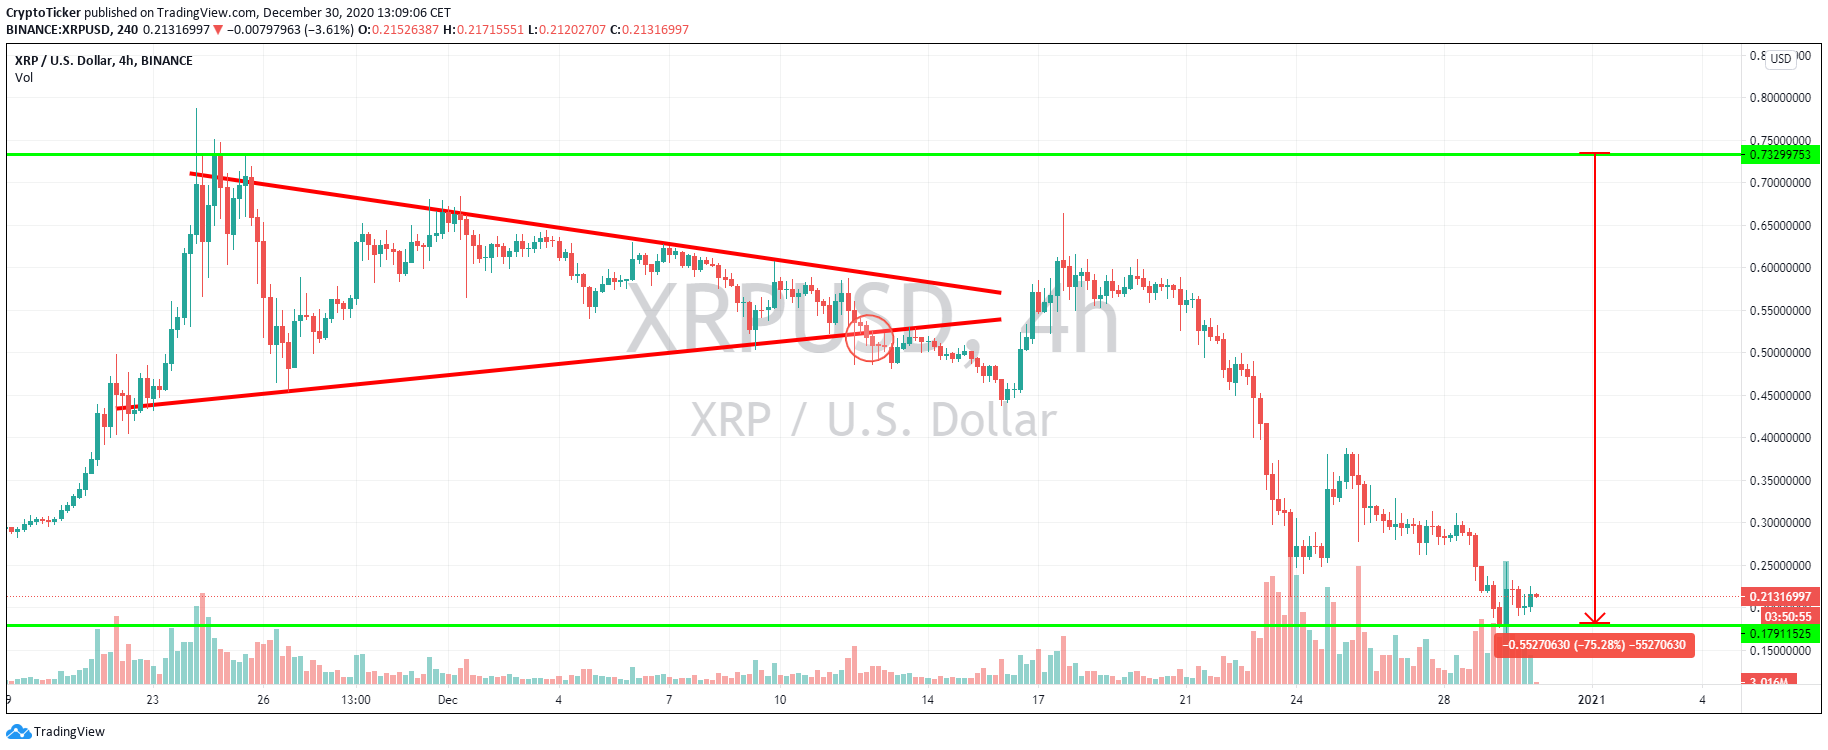 XRP/USD 4-hours chart, showing the fall in prices post SEC lawsuit